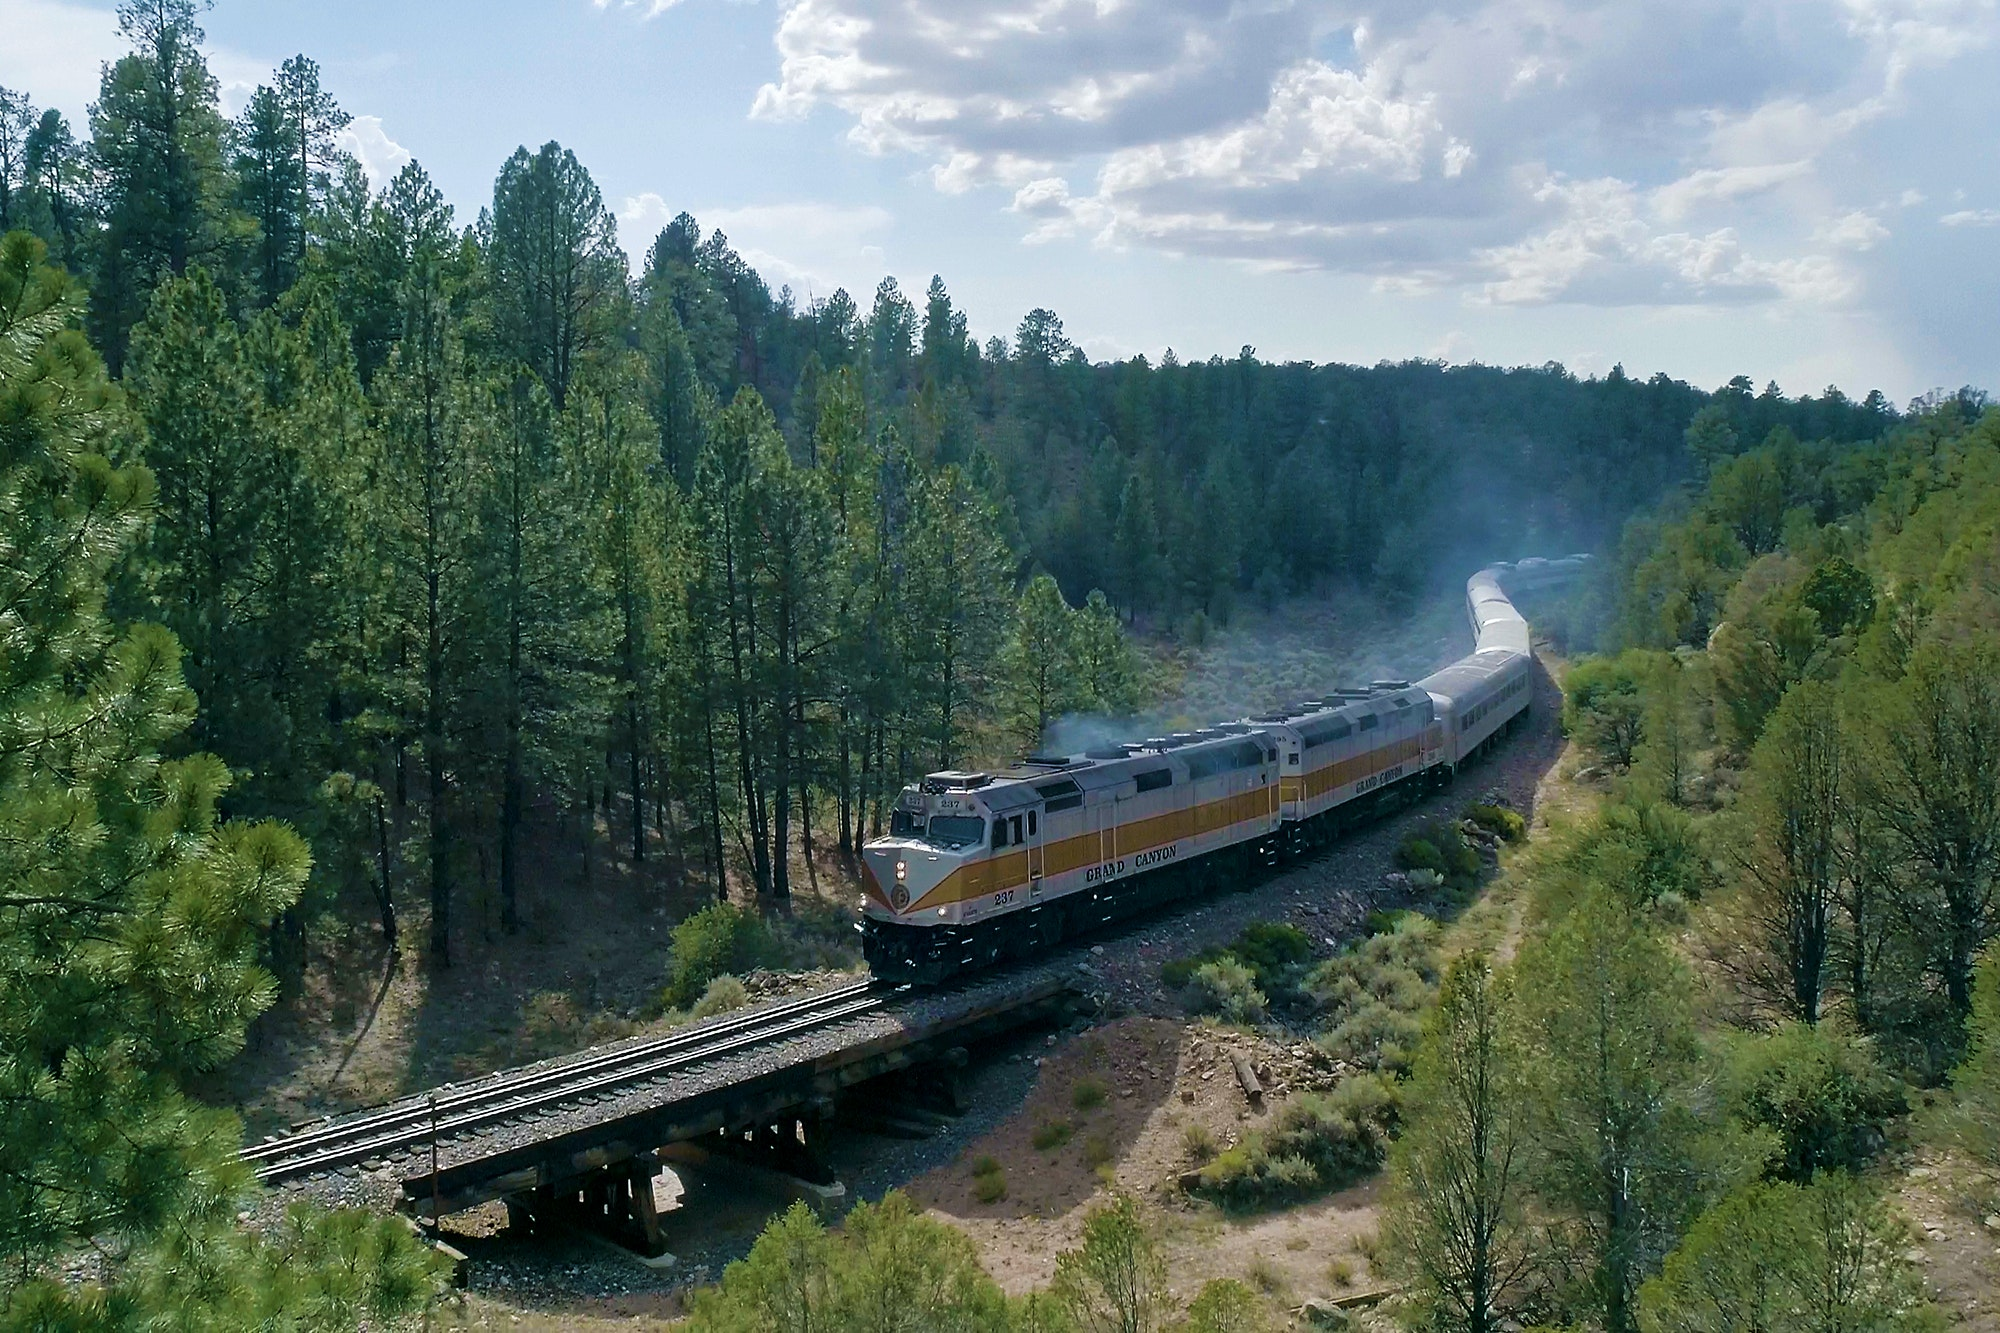 The Grand Canyon Railway has been operating since 1901.